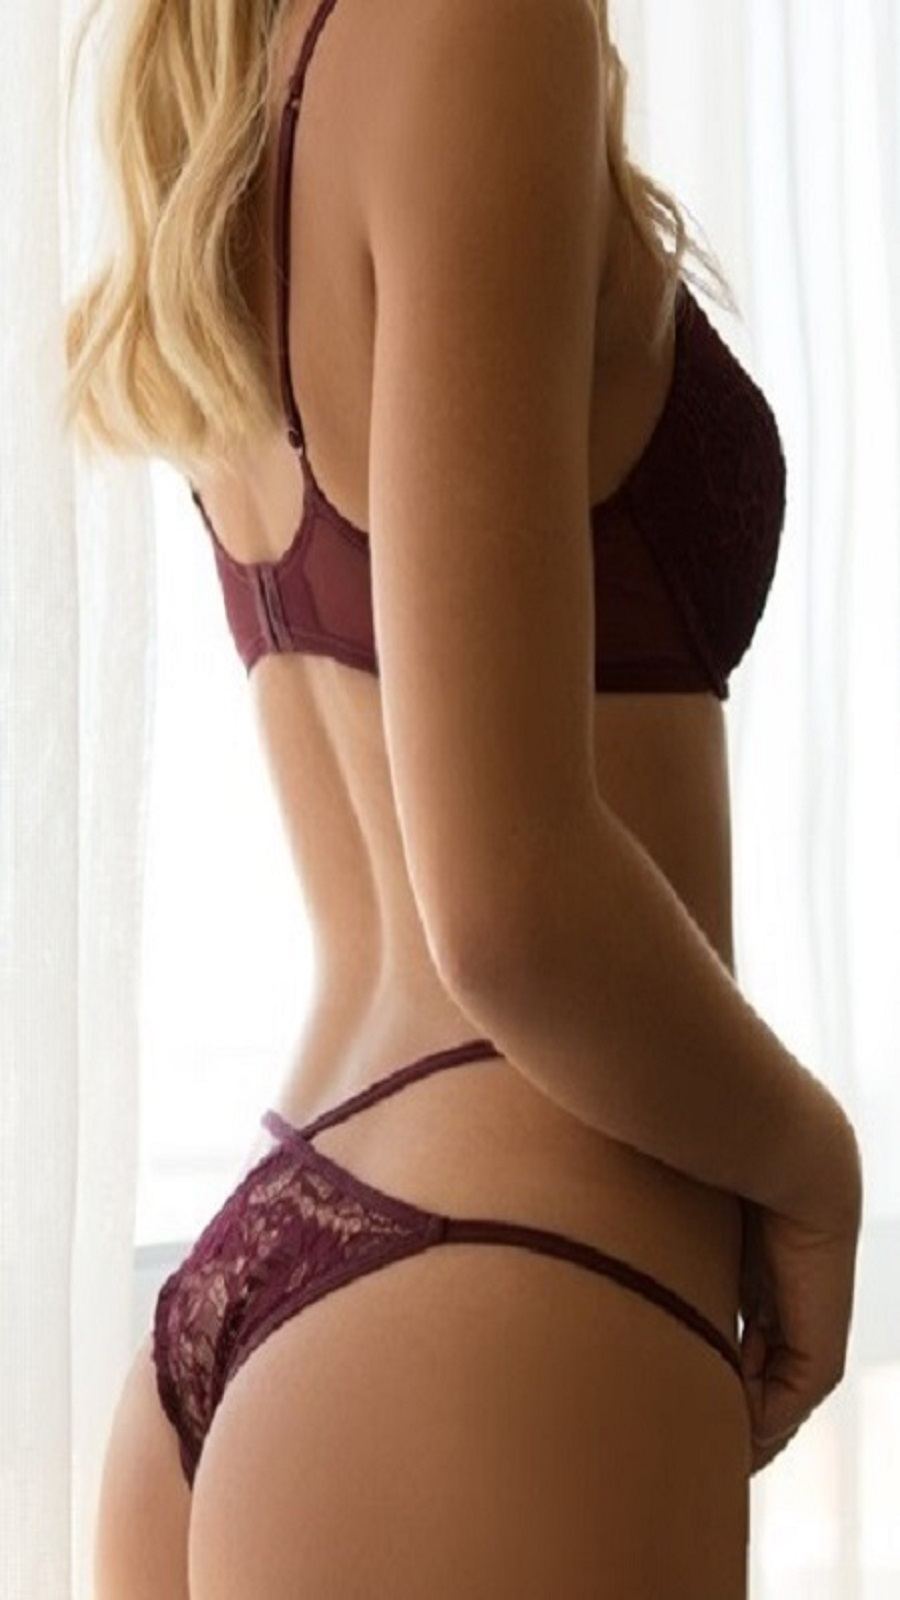 If you are looking for the perfect companion tonight give us a call on 07412621234 to book Anastasia for the best night of your life.